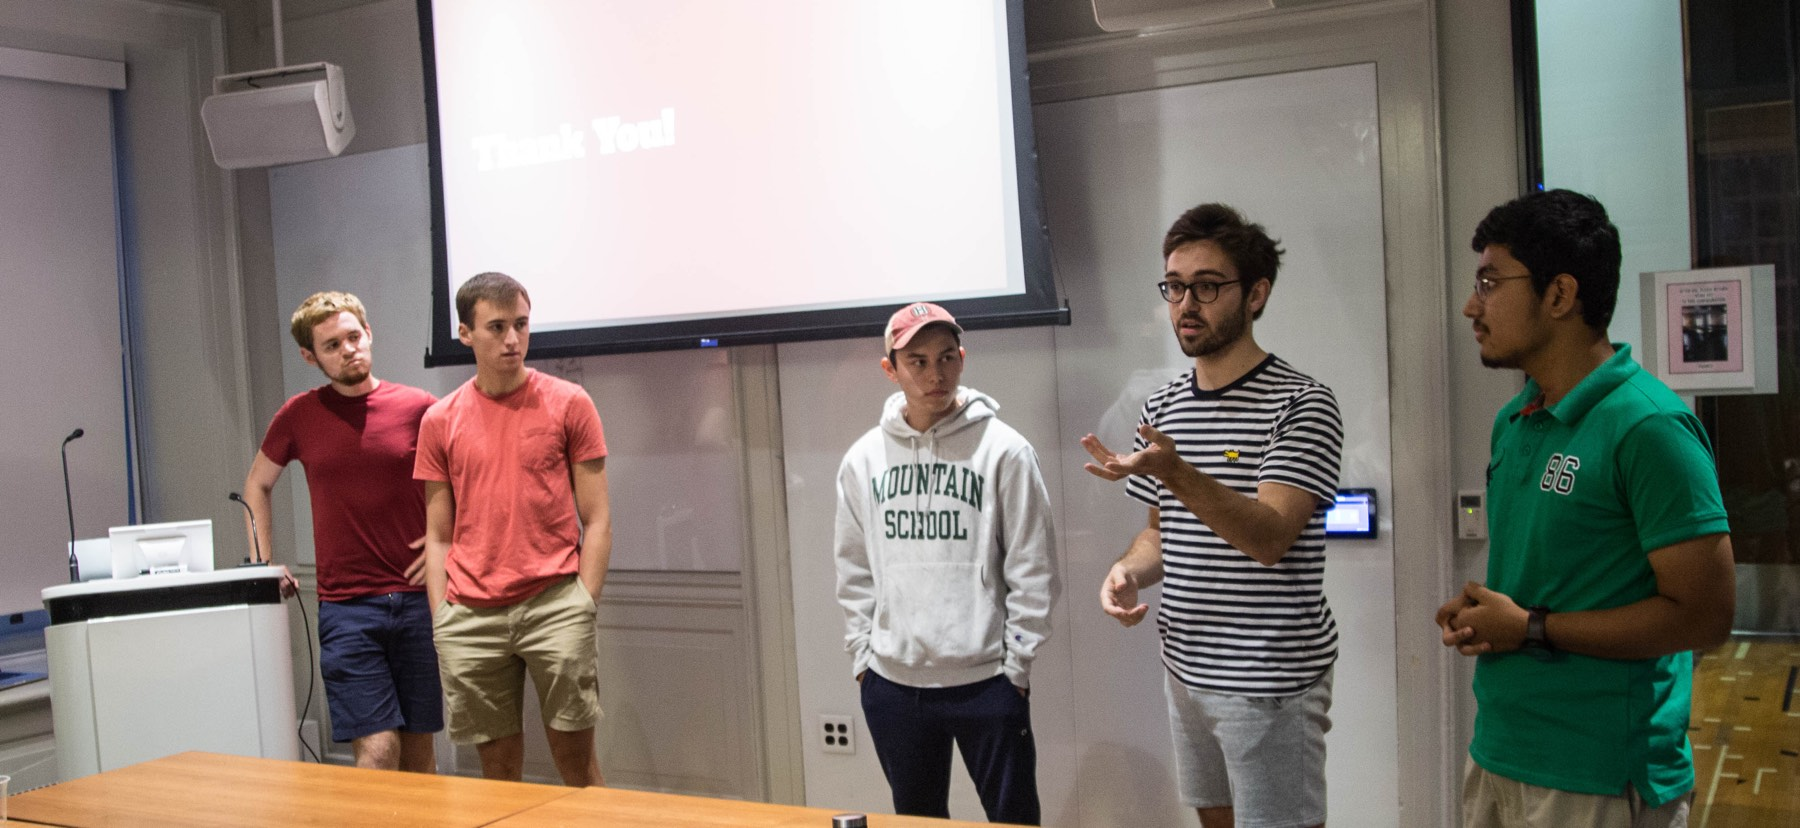 Students present their work during the Trico Hackathon